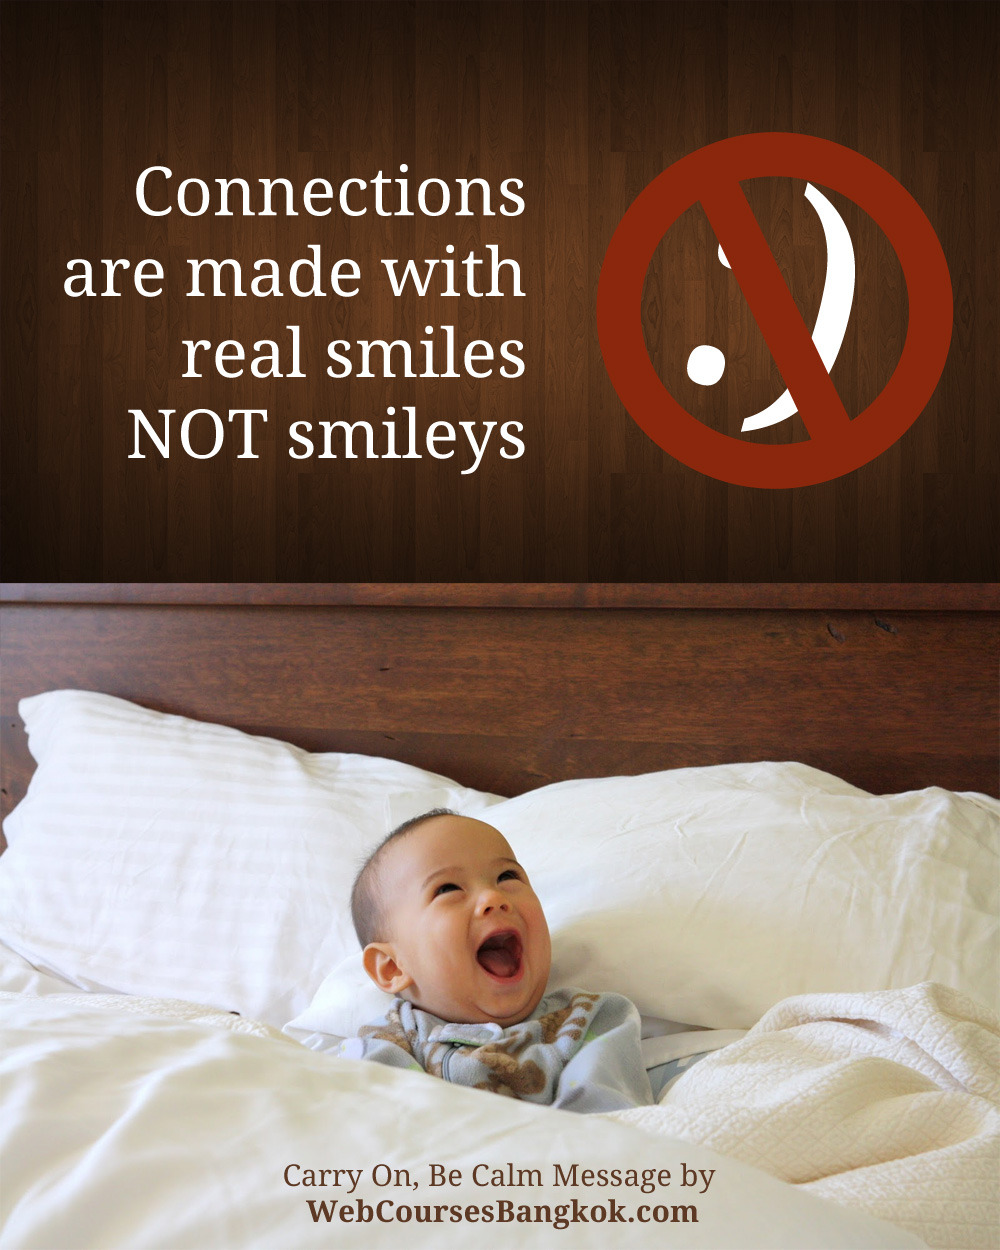 Real smiles vs. smileys